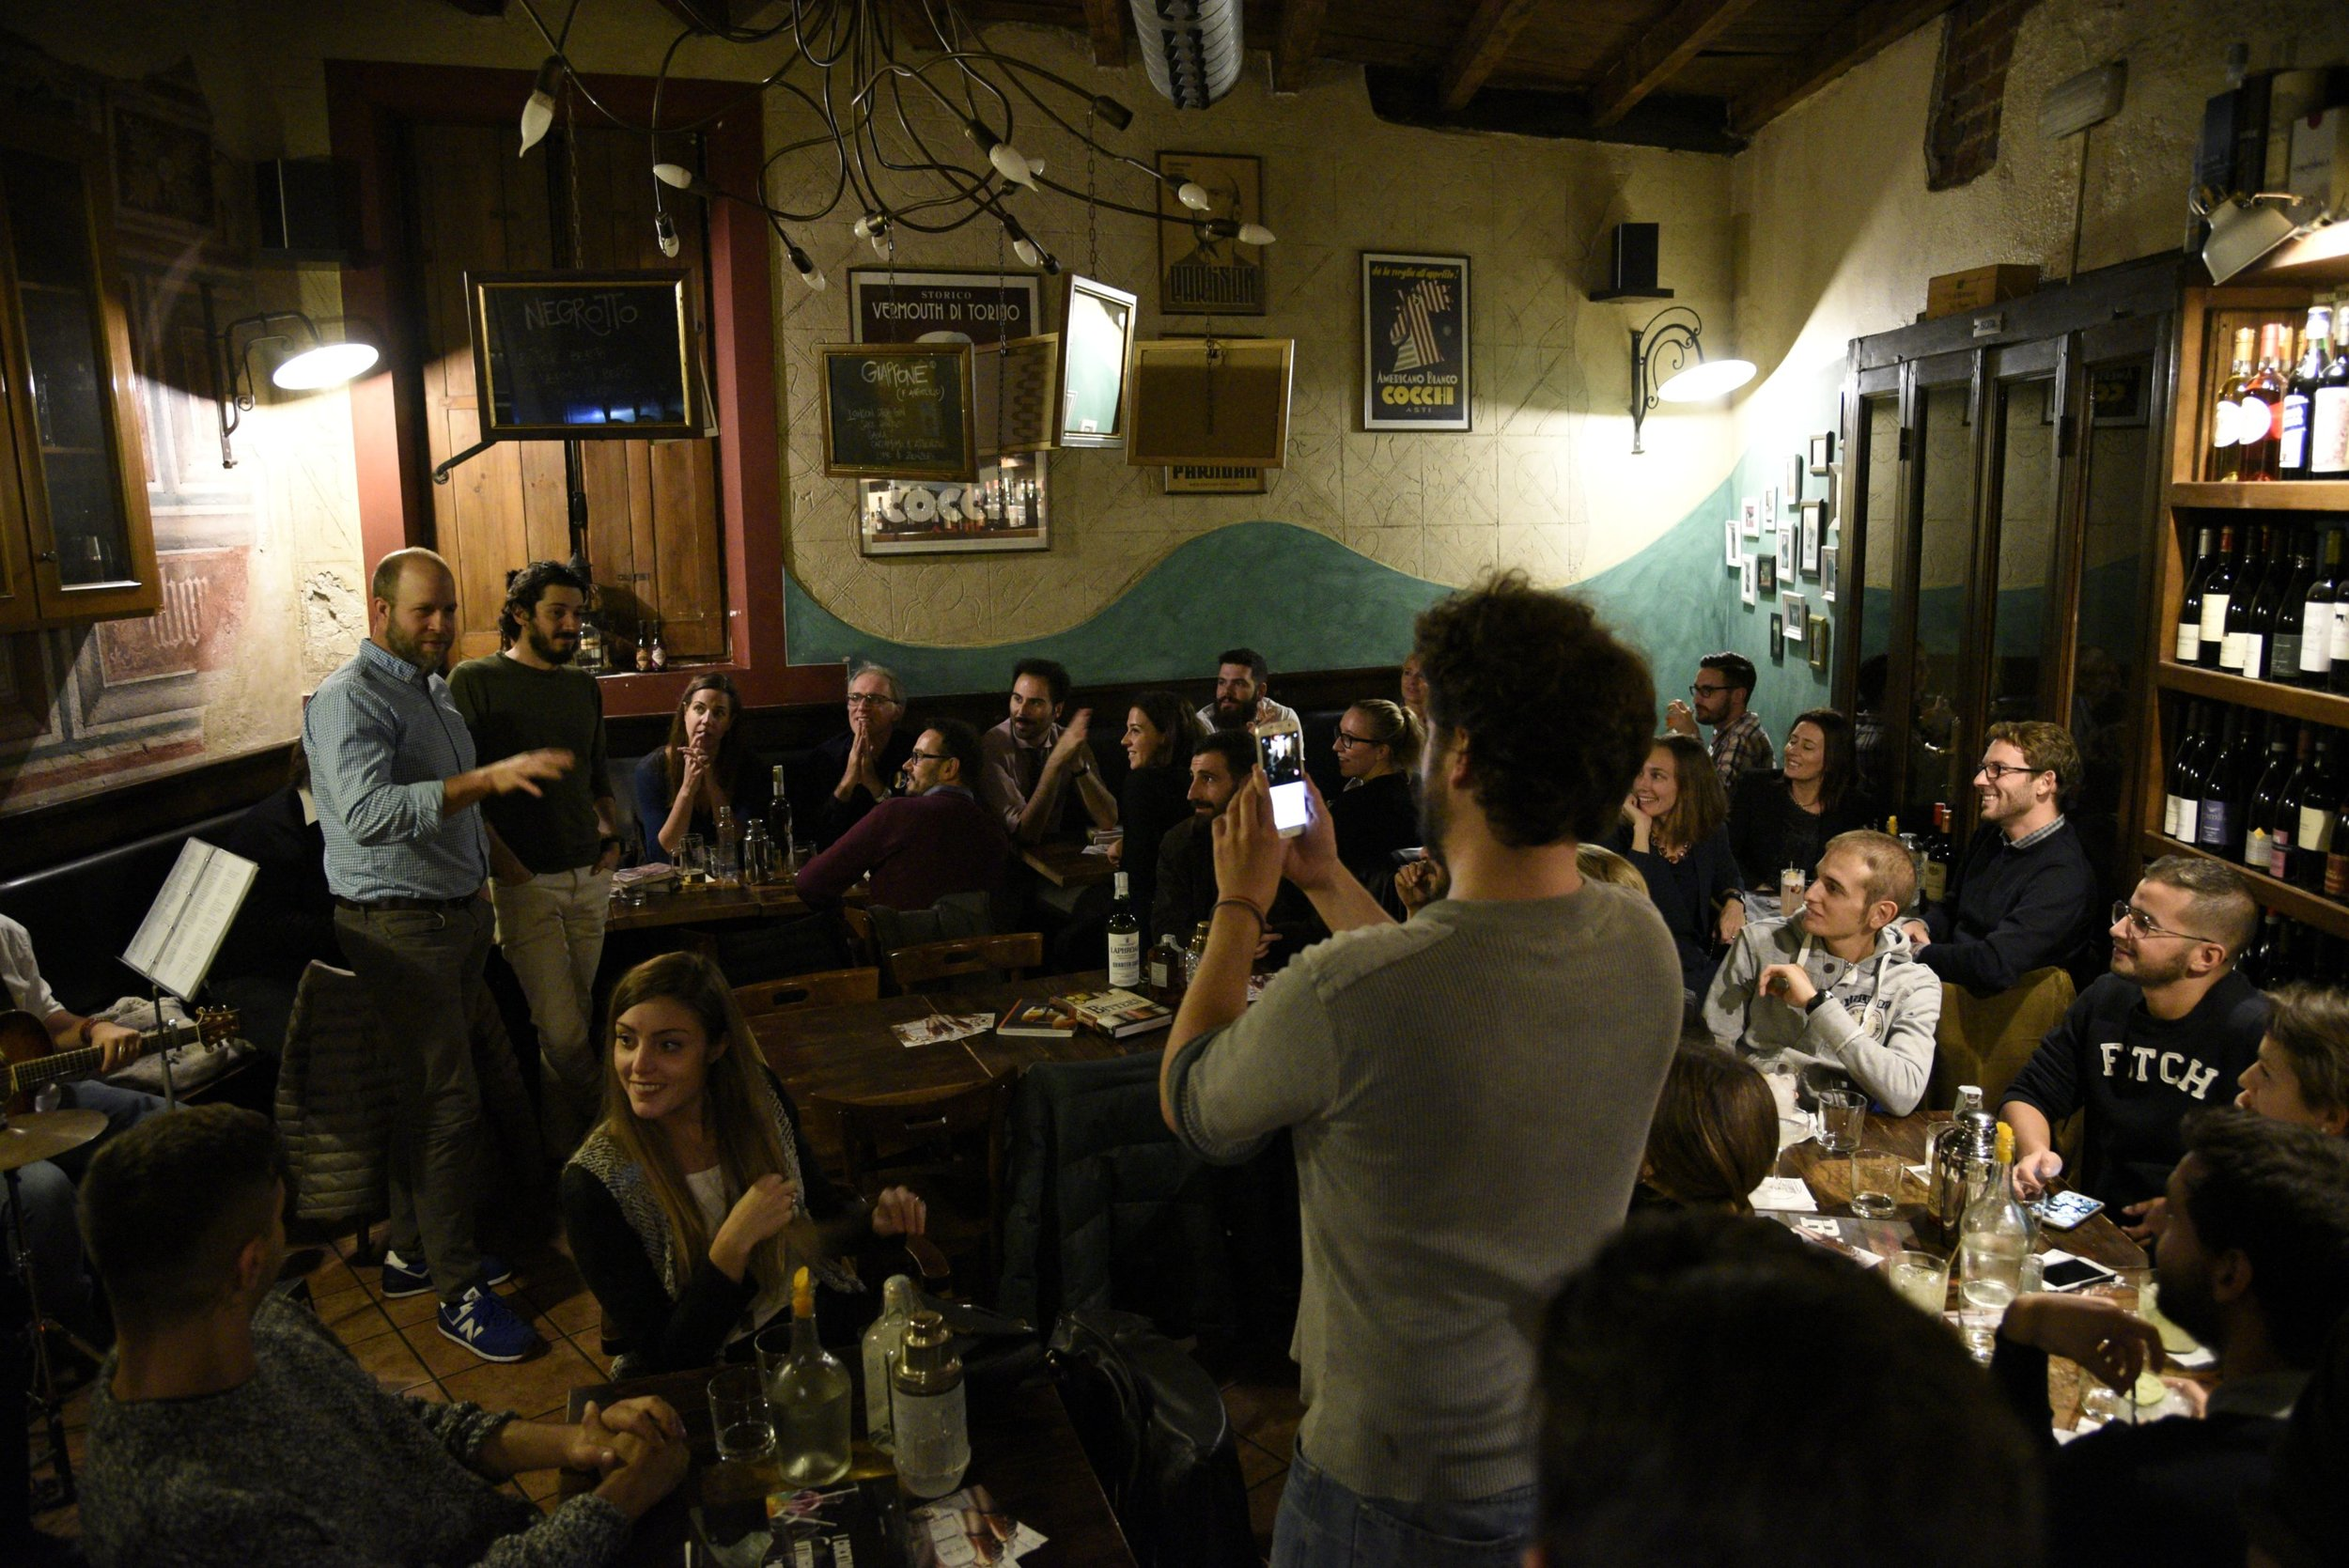 Brian tells the story of Death's Door to the crowd at BarCastello